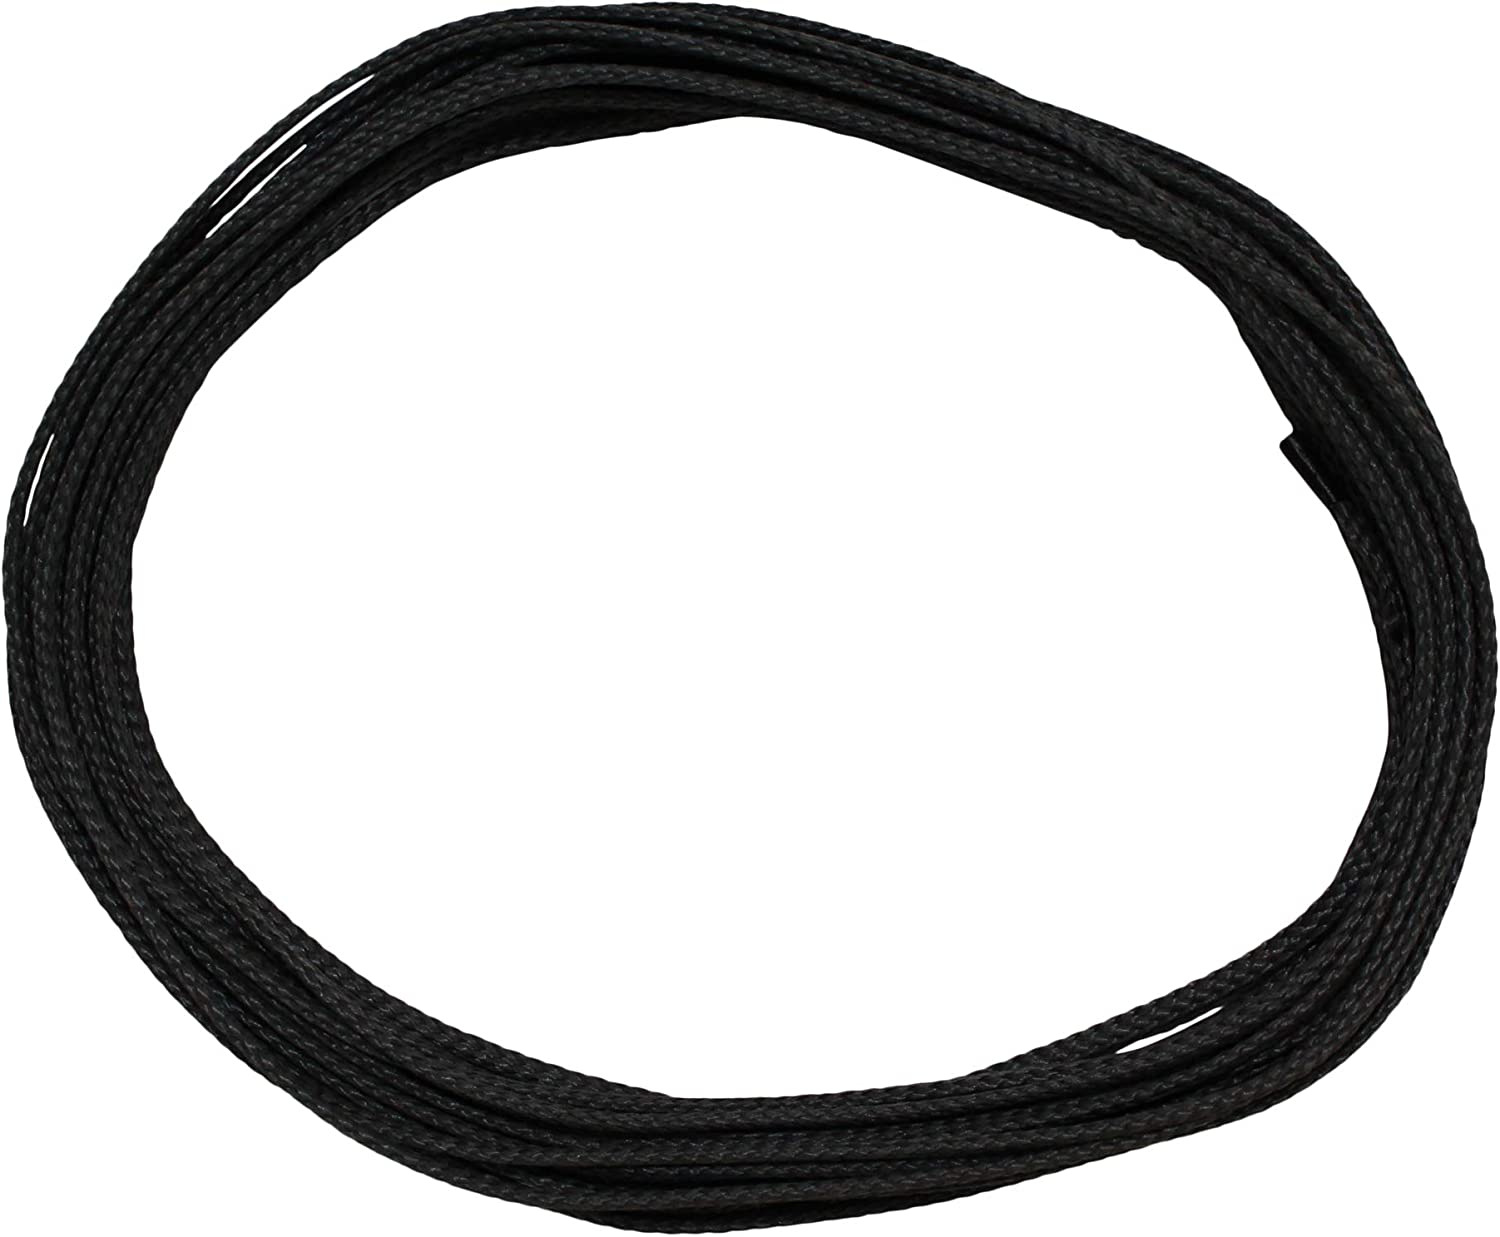 SGT KNOTS Hollow Braid Technora Twine Tactical Rope Survival Cord Polytetrafluoroethylene (PTFE) Coating - High Strength USA Made Cord - Easy to Splice for Loops - for Whoopie Slings, Bushcraft